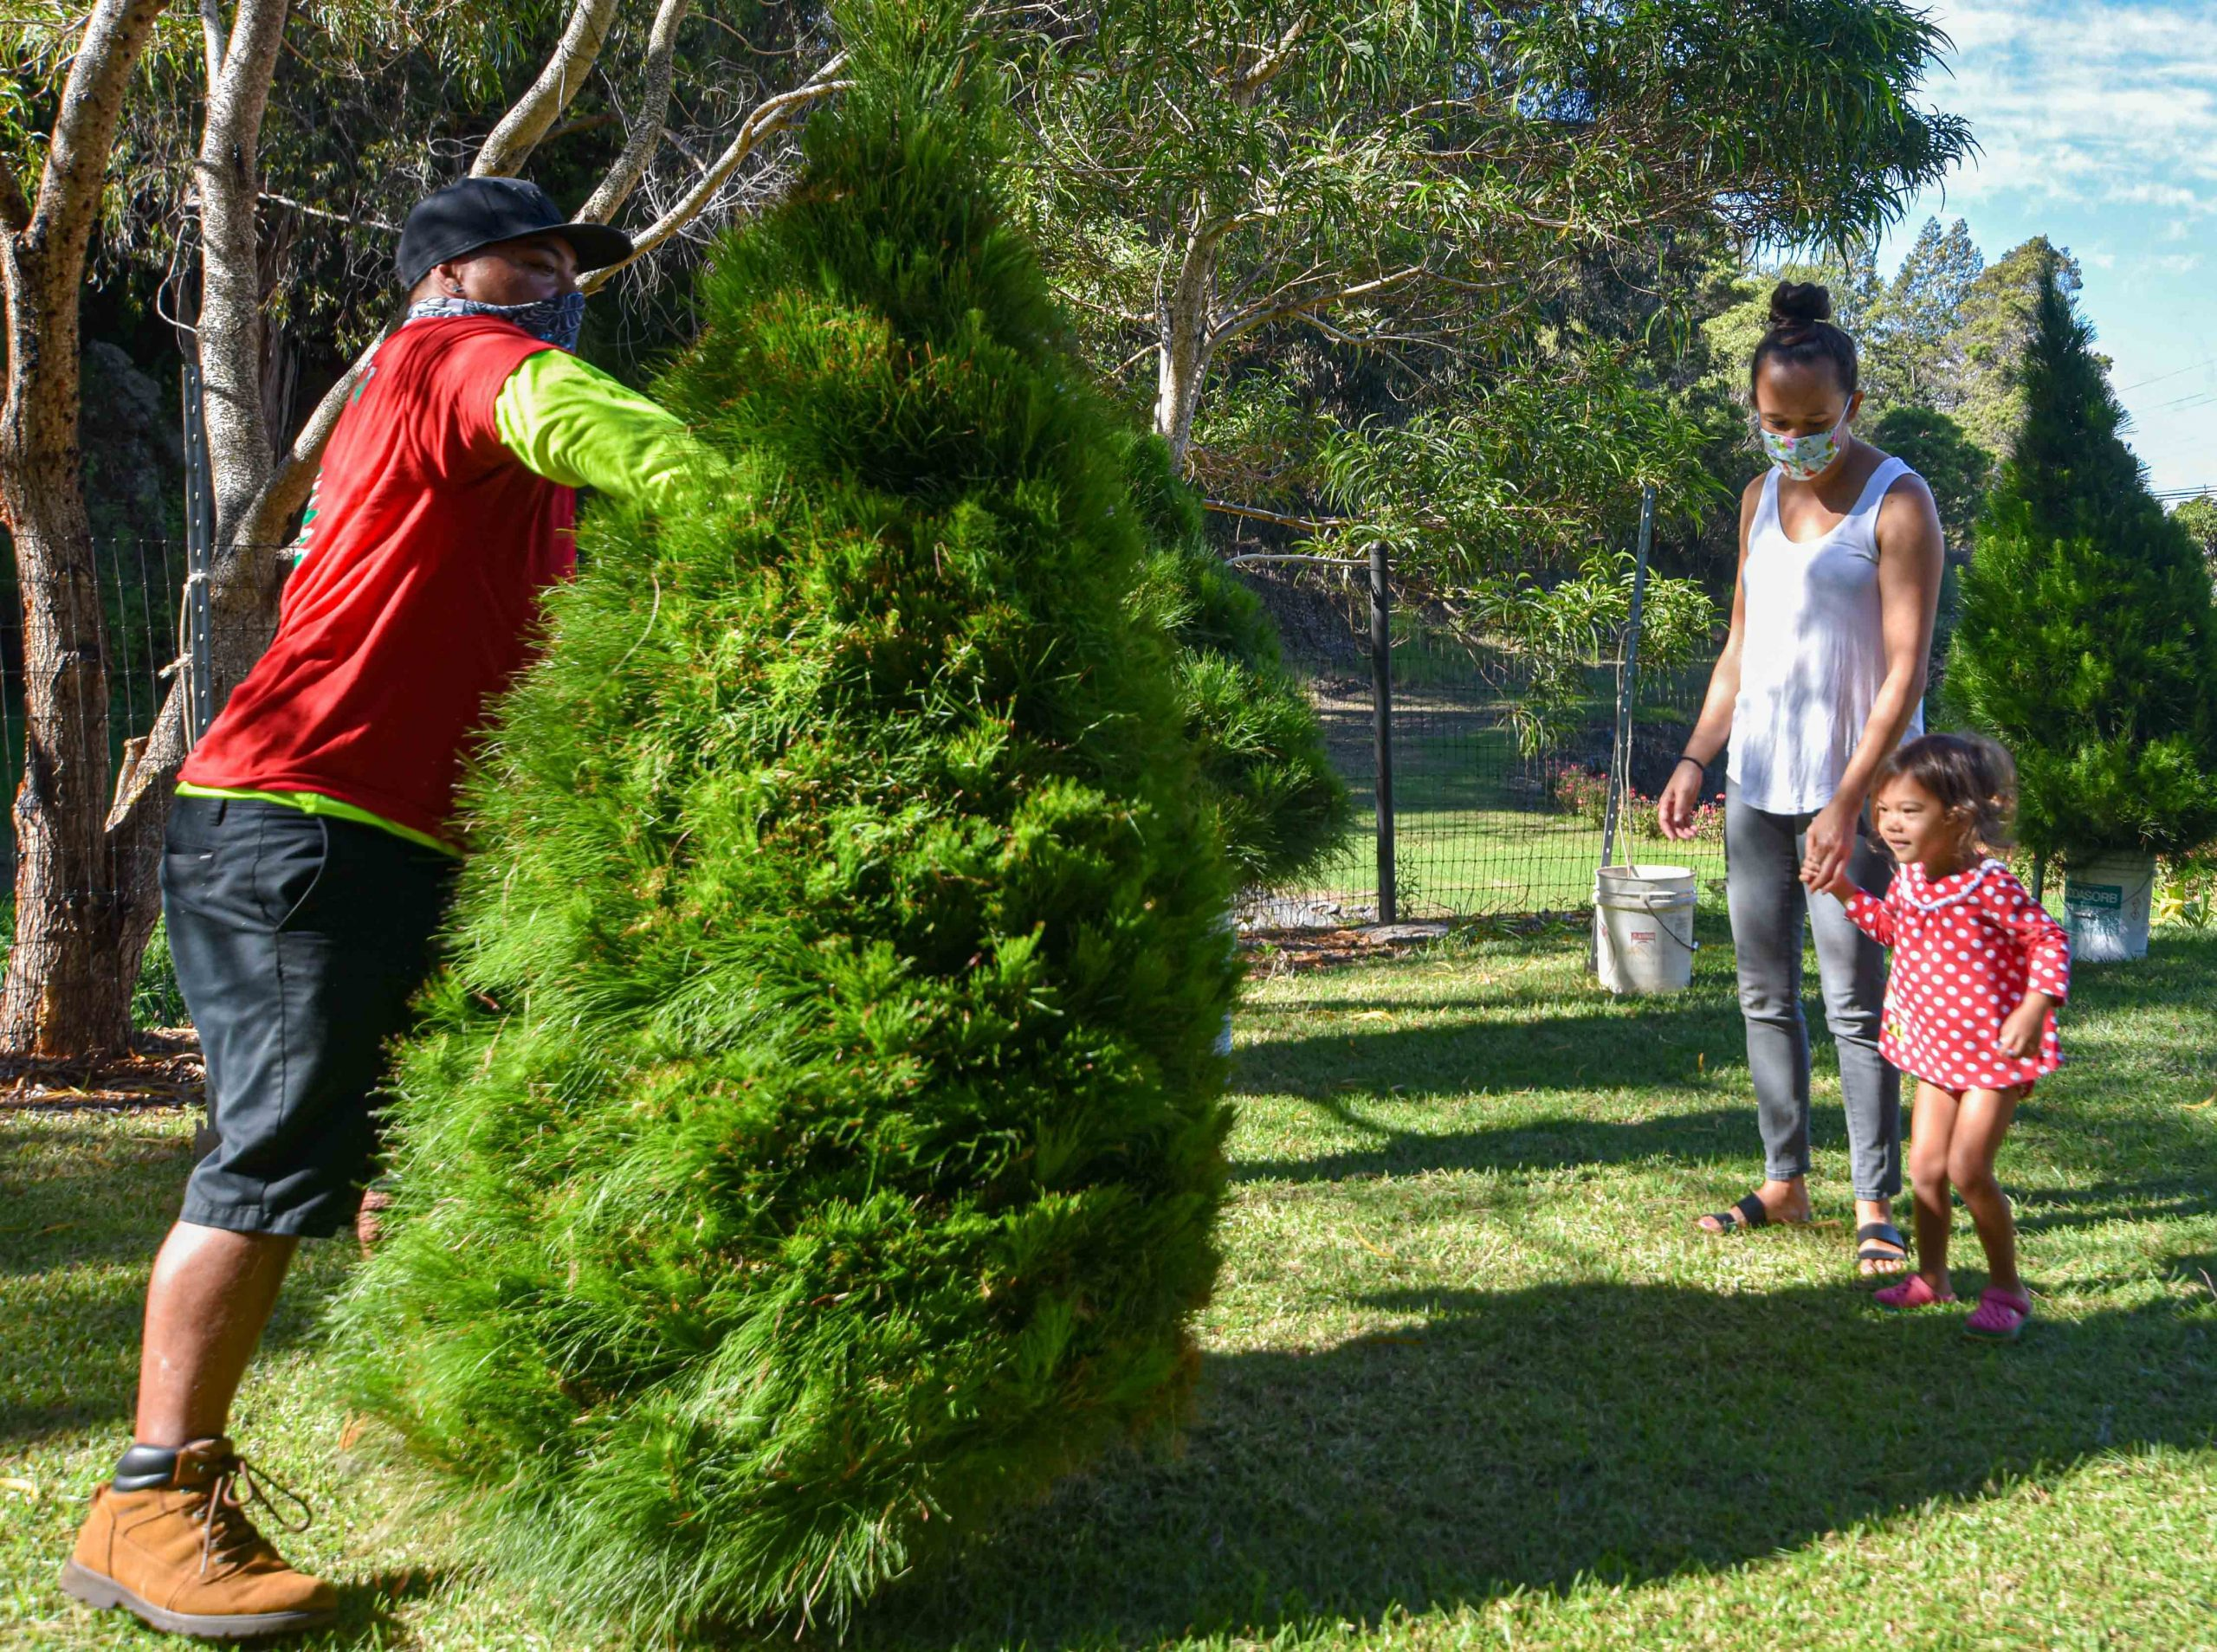 Christmas Tree Sales Help 50-Year-Old Kula Botanical Garden Stay In Business